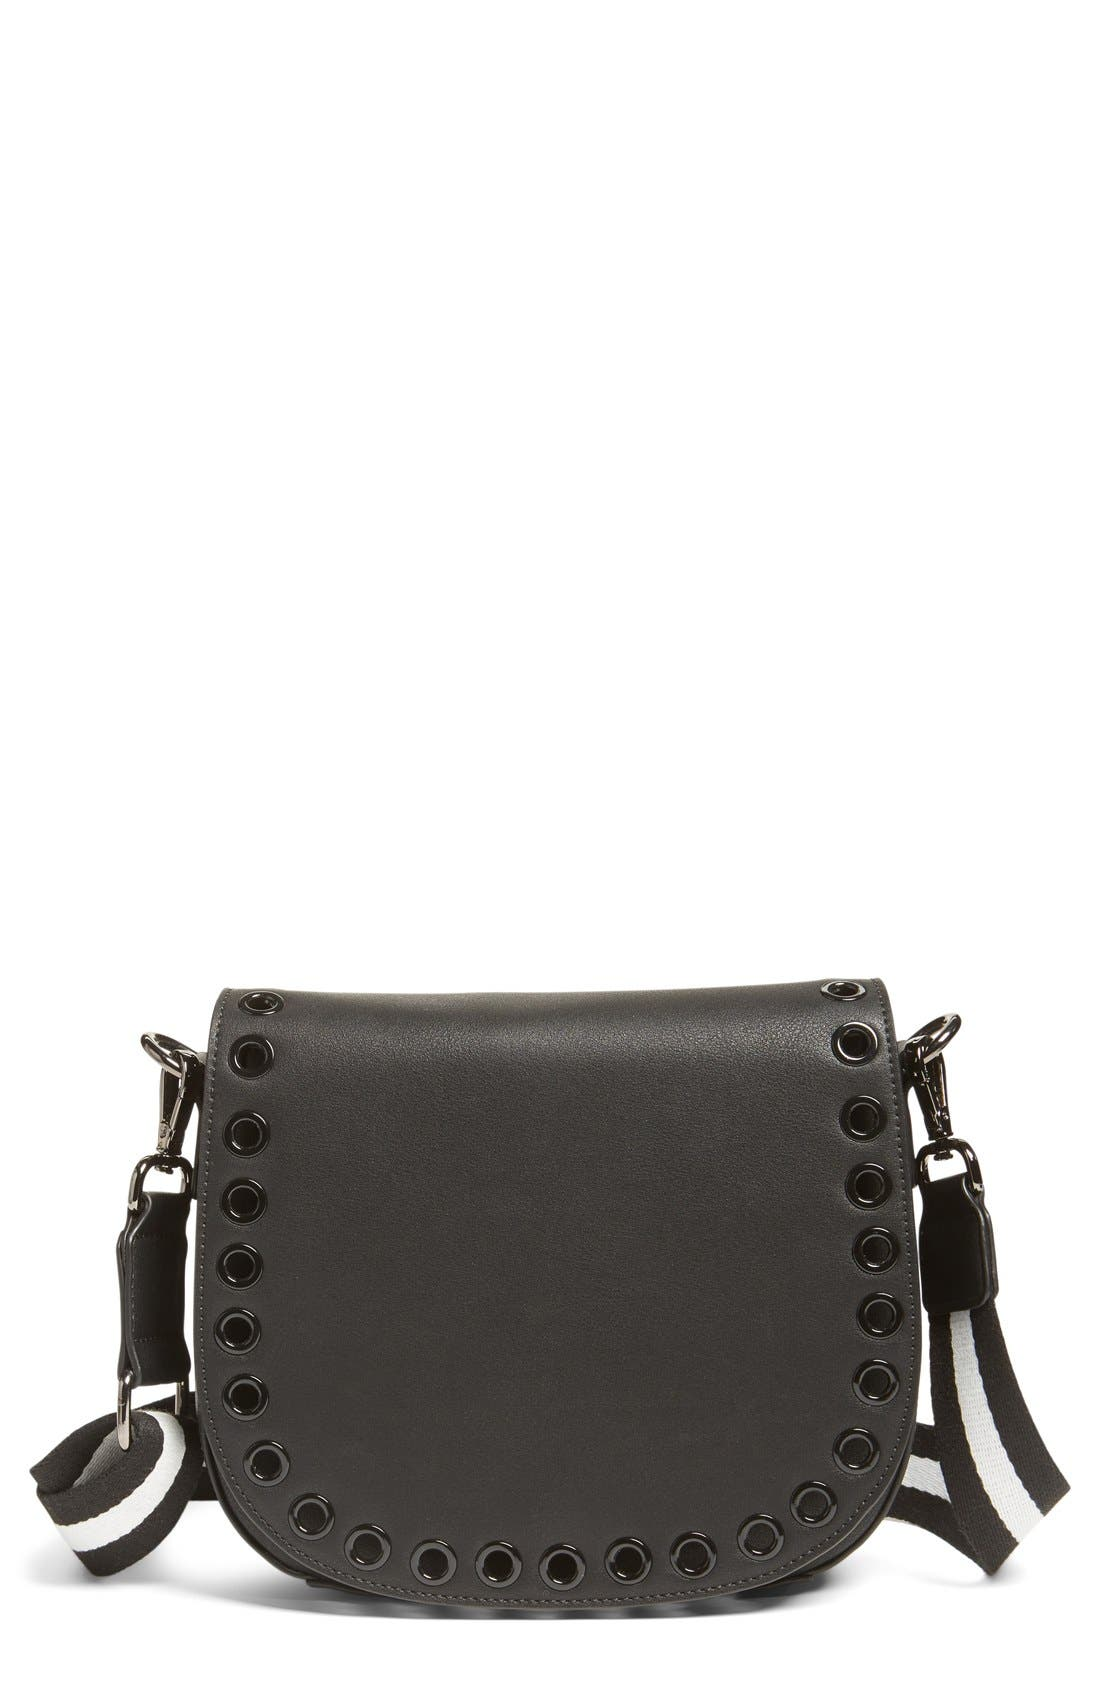 Phase 3 Crossbody Saddle Bag